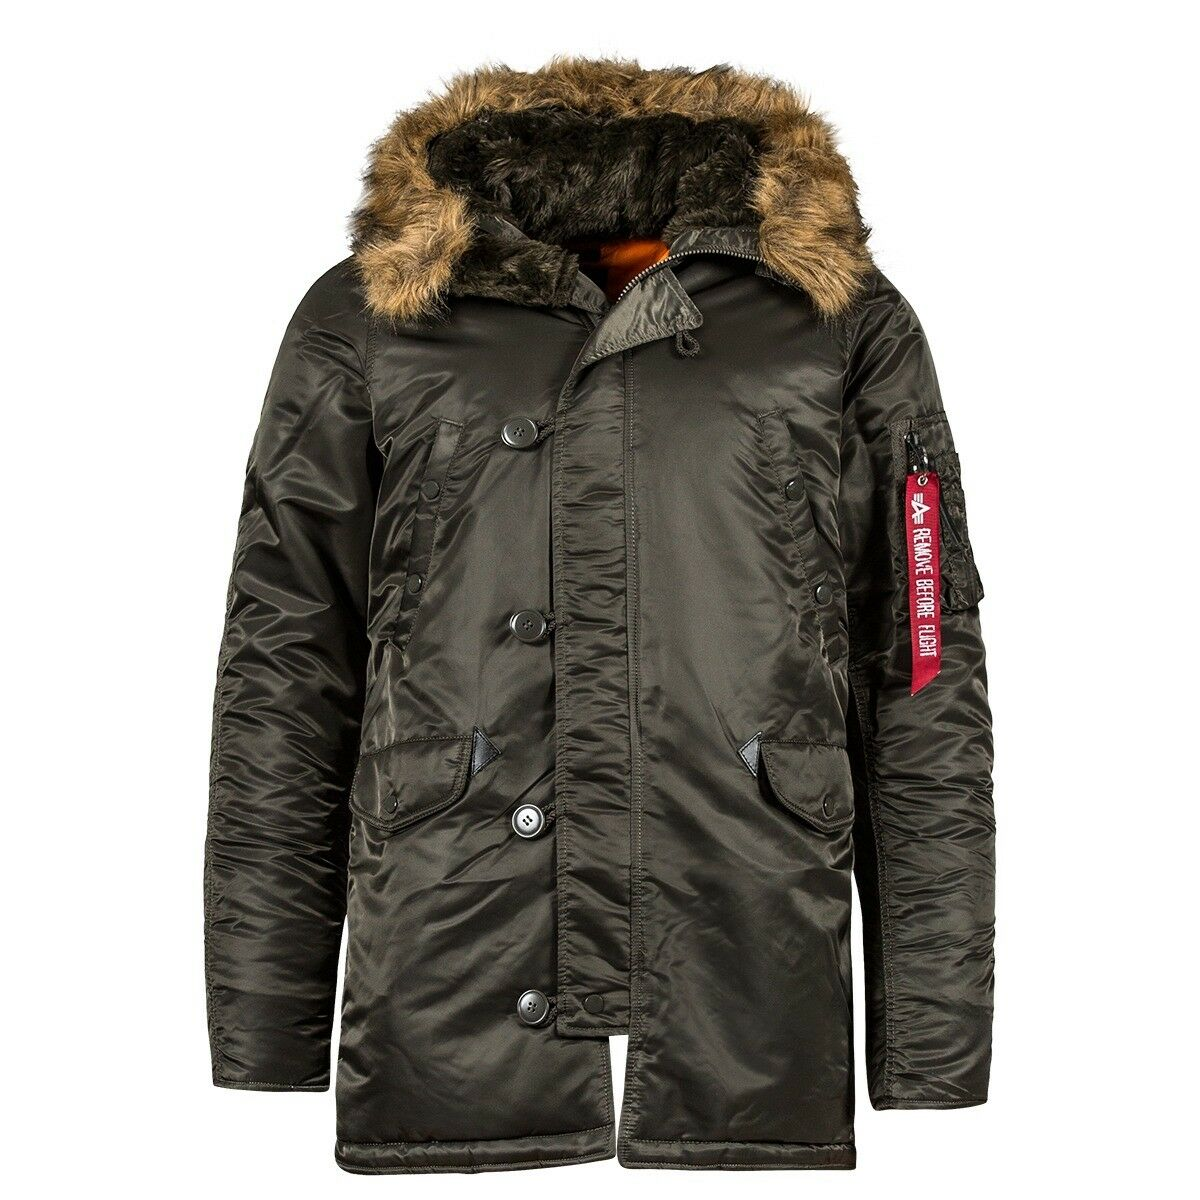 aab2aba5a5f0 ... Alpha Industries Slim Fit N-3B Parka Coat Nylon N3B Coat MJN31210C1  a87ac4 ...